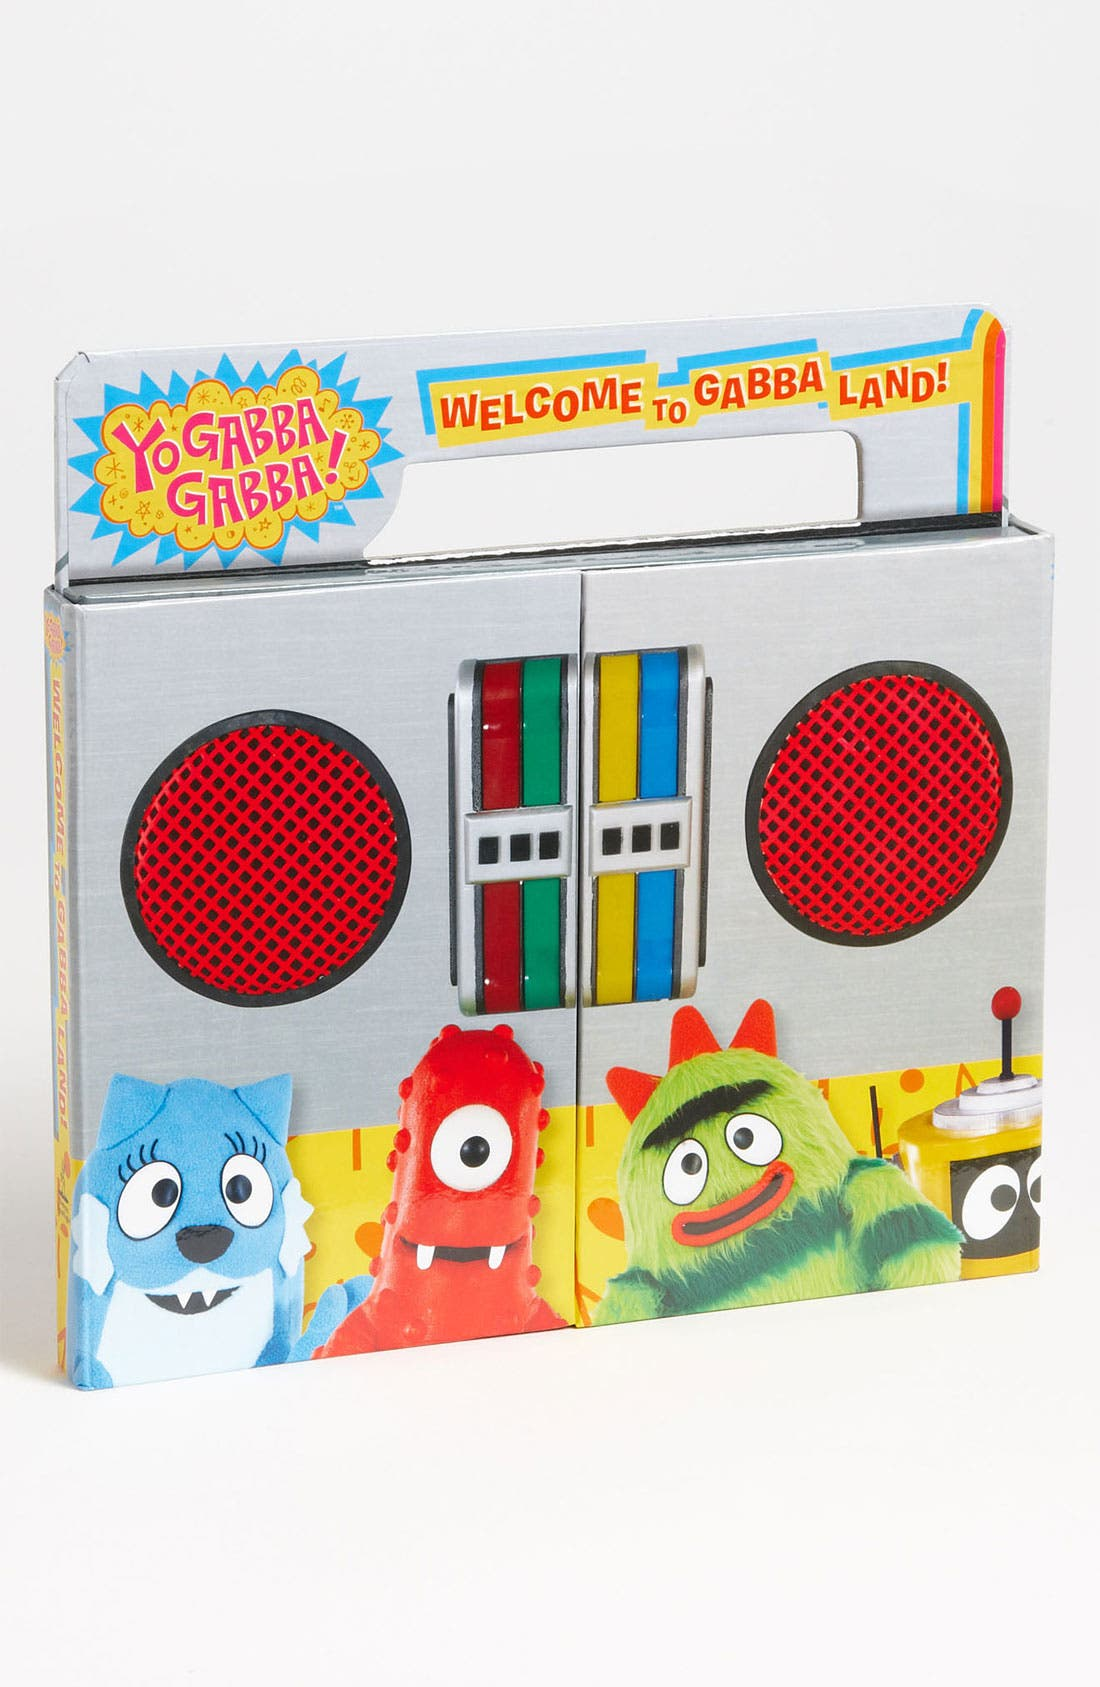 Alternate Image 1 Selected - Irene Kilpatrick 'Yo Gabba Gabba!™ - Welcome To Gabba™ Land' Book